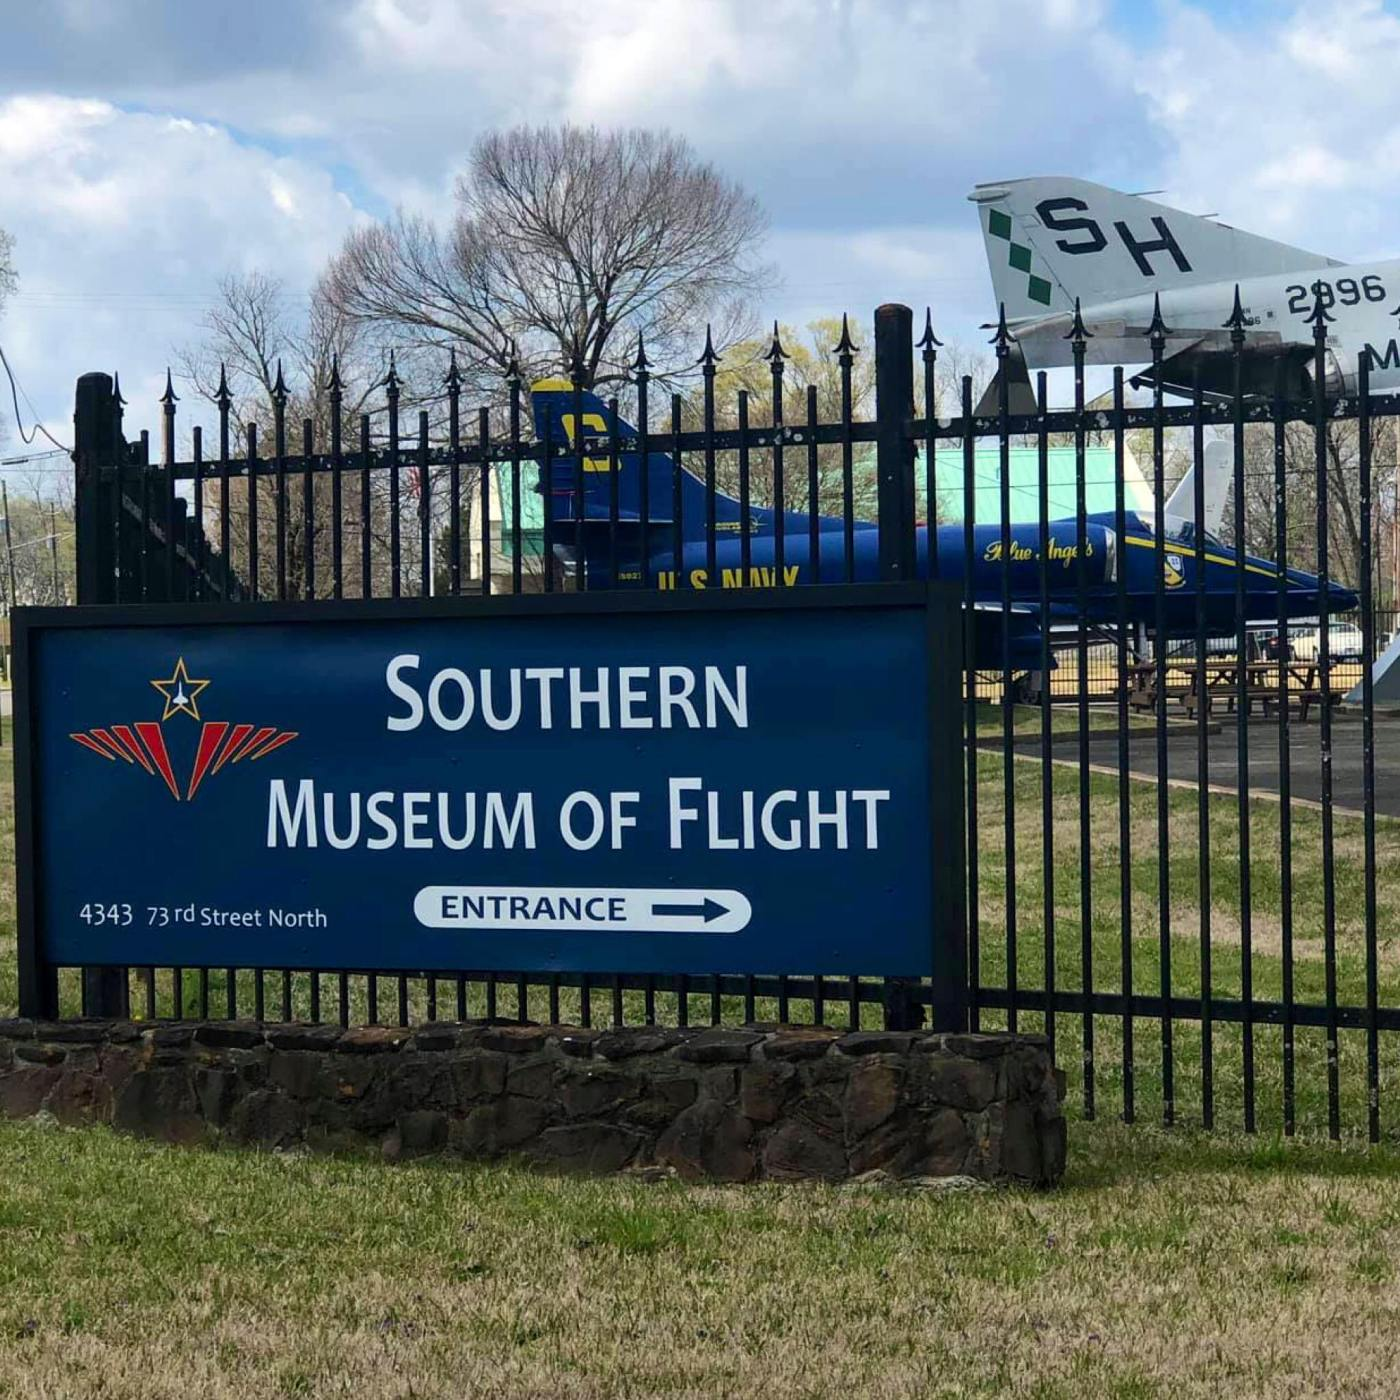 The Southern Museum of Flight is reopening soon